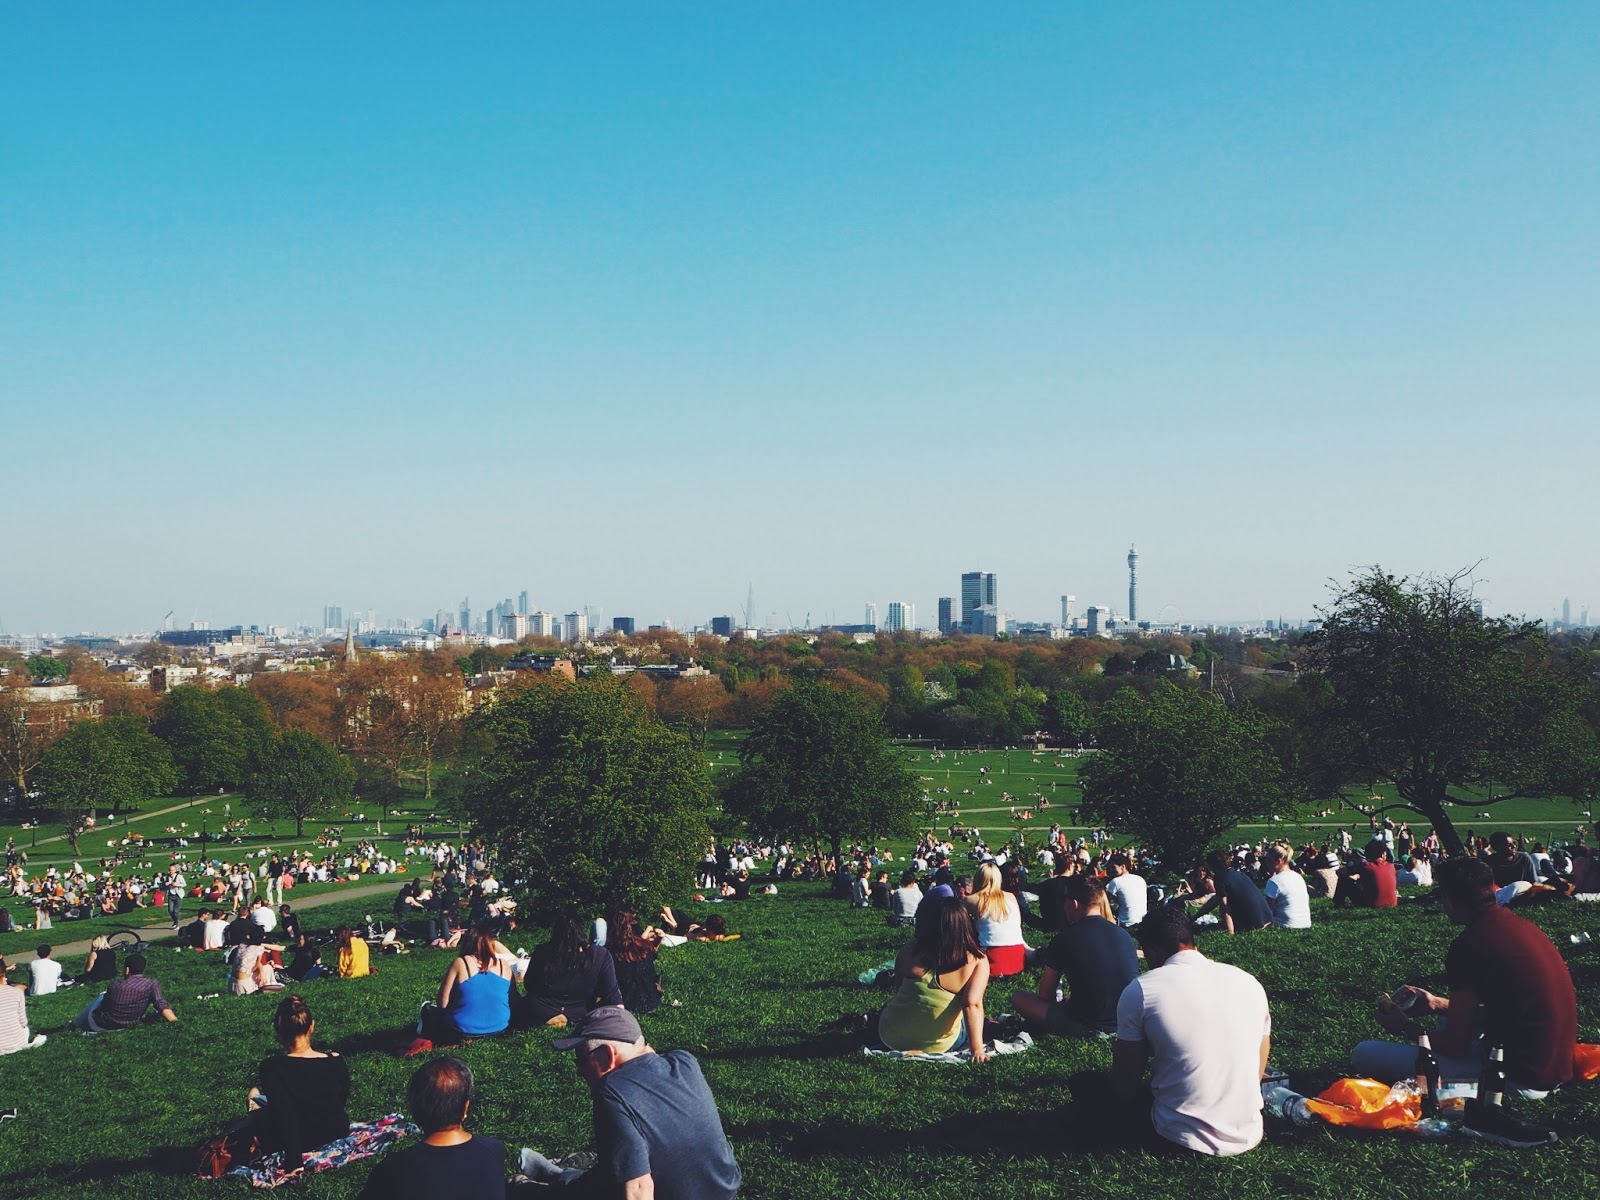 Primrose Hill chalk farm london skyline view of London sky bloggers